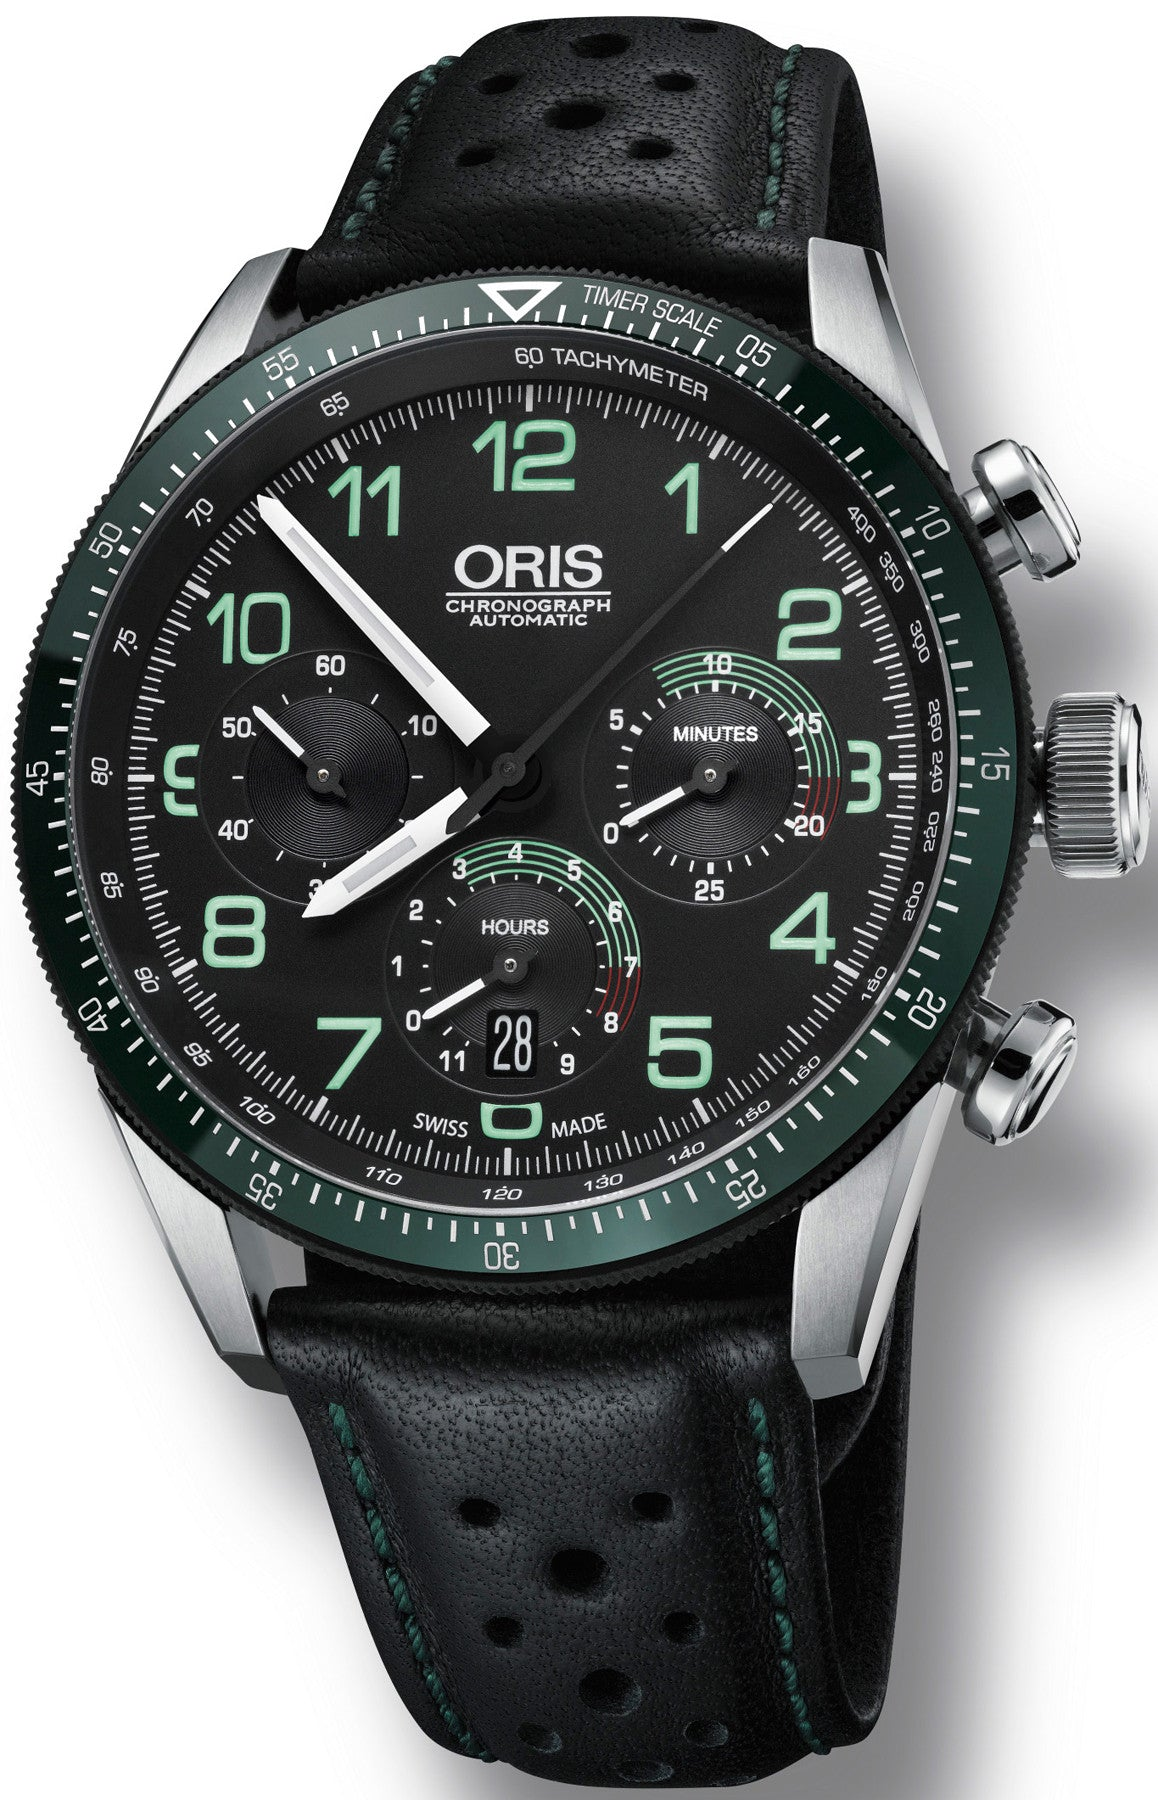 Oris Watch Calobra Chronograph Limited Edition II Set D